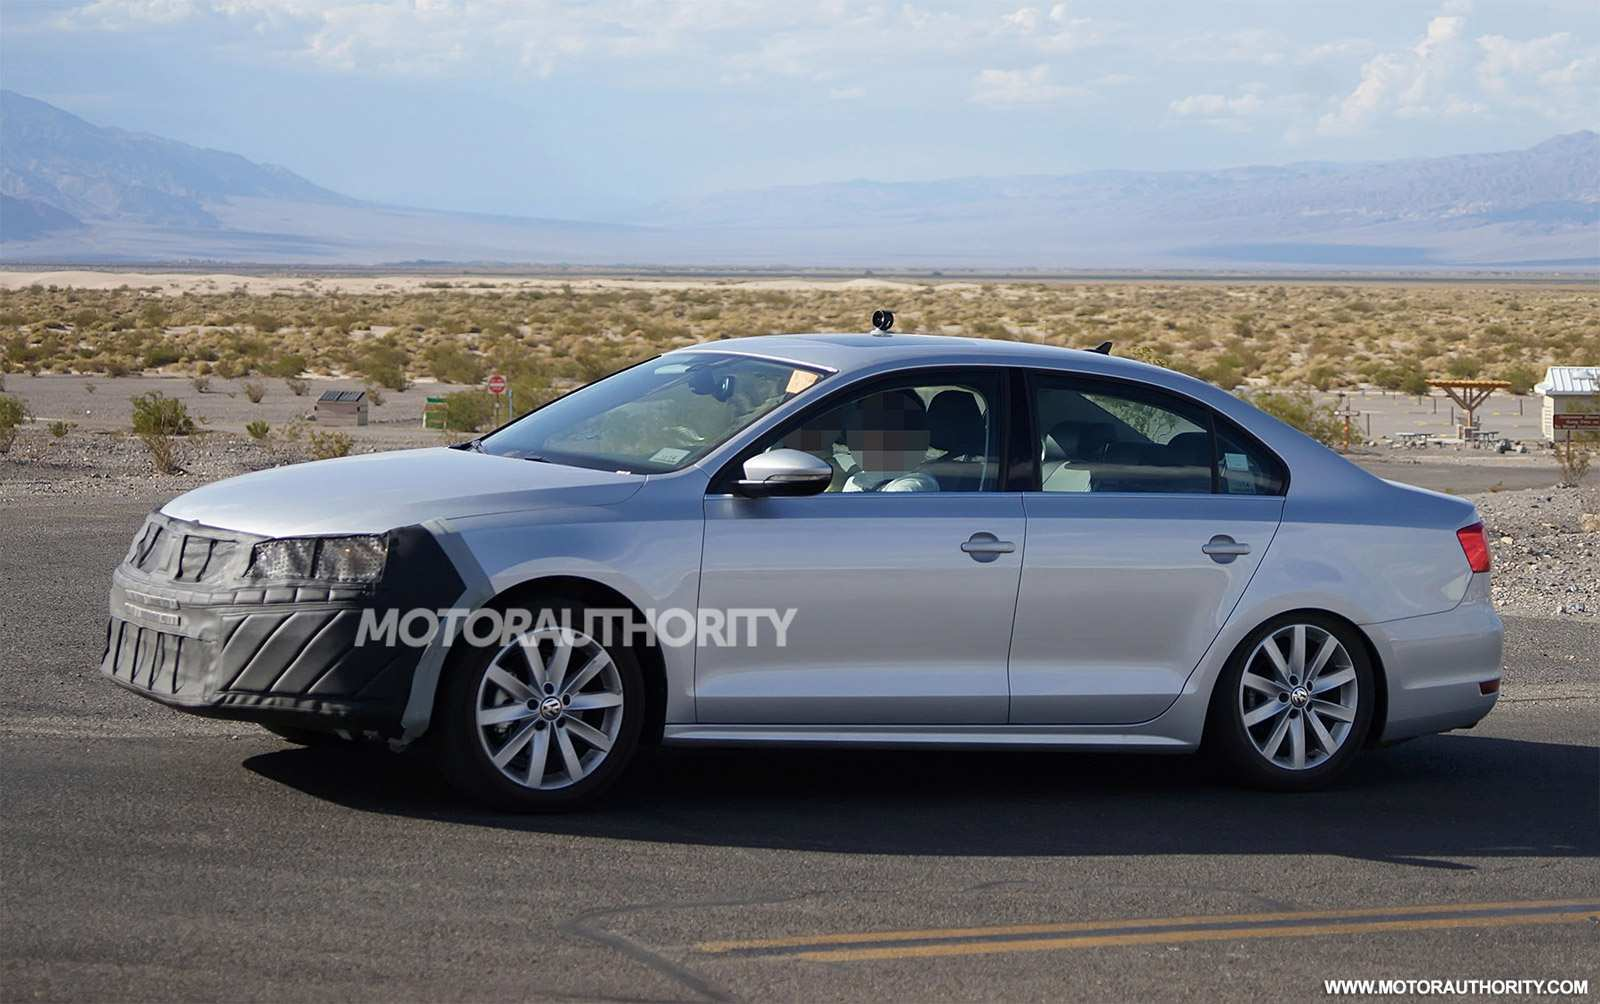 61 Great 2019 Jetta Spy Shots Specs by 2019 Jetta Spy Shots